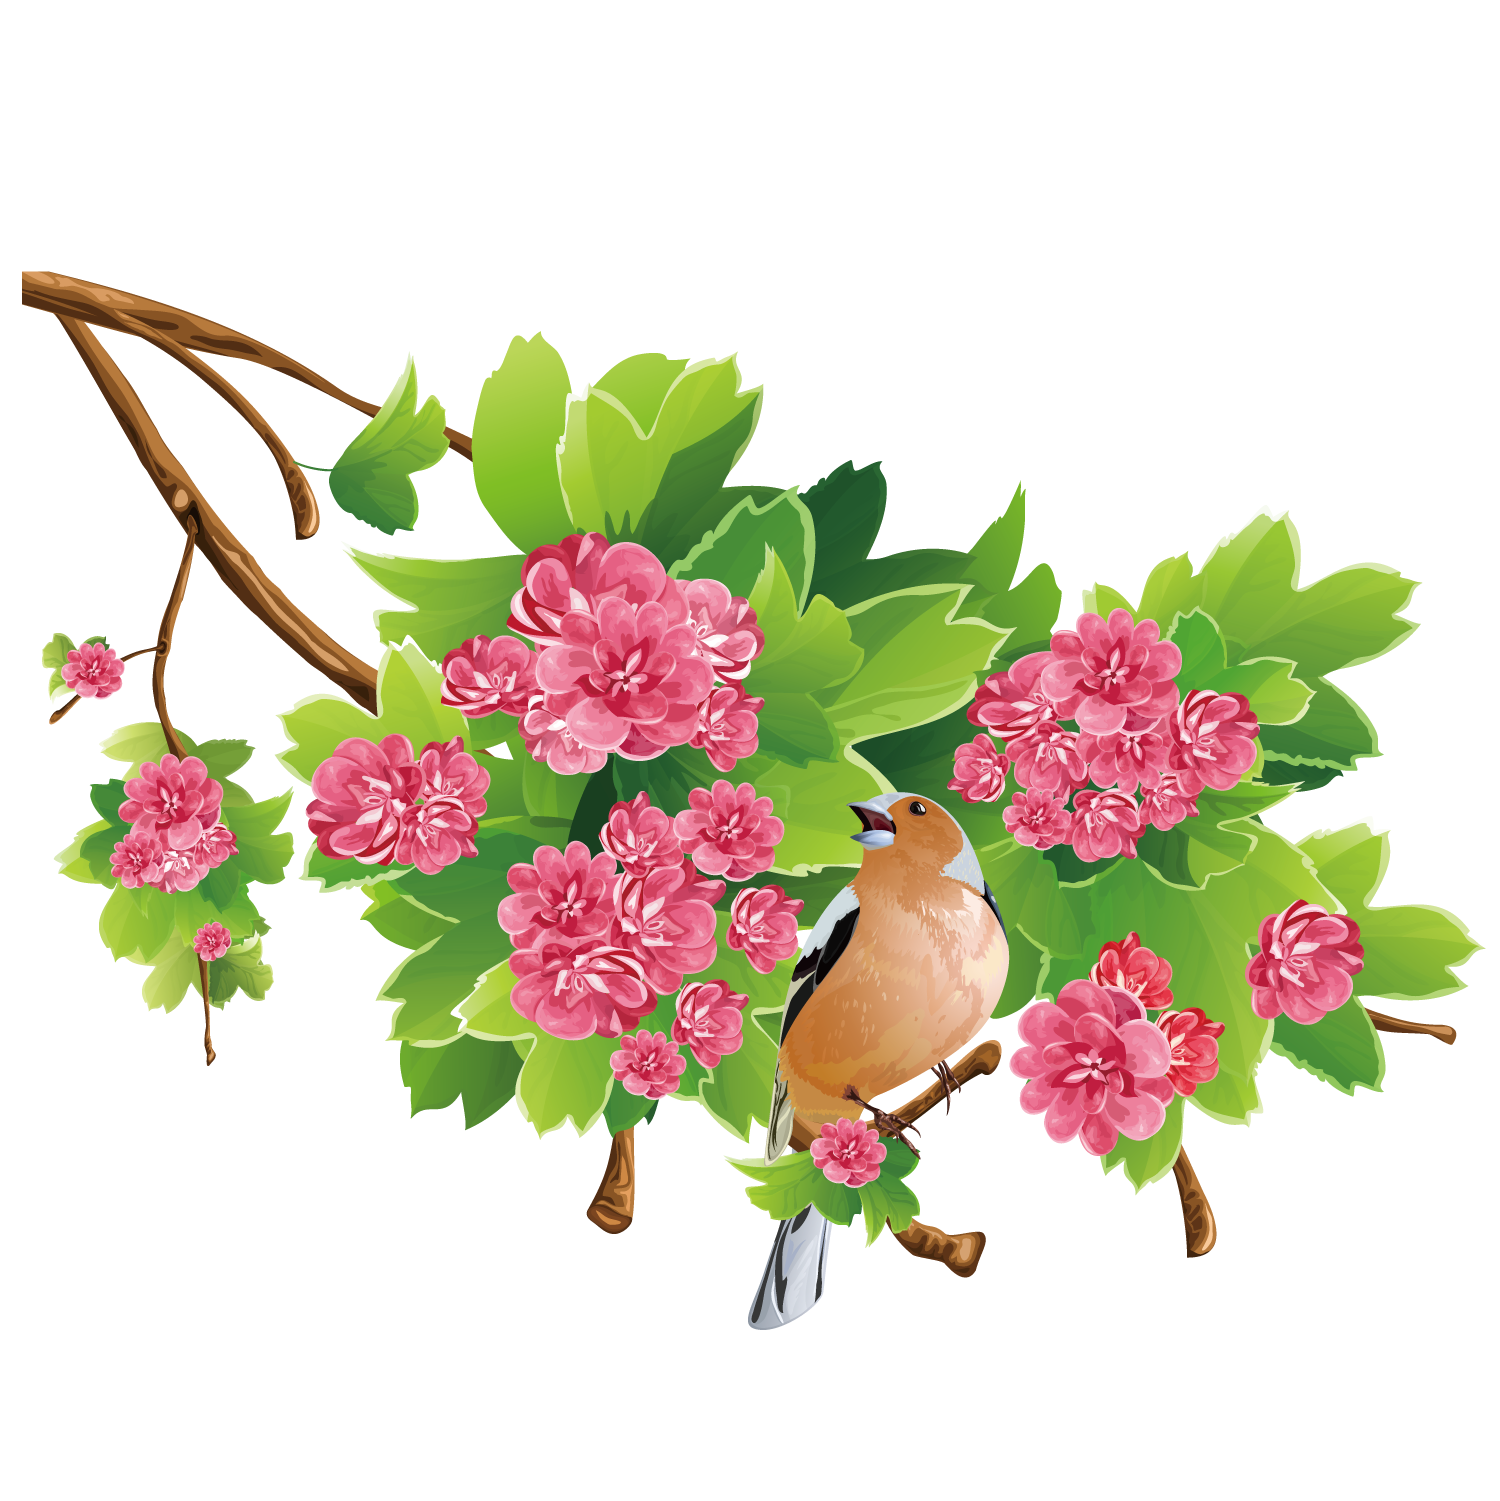 Flowers free image picture free Flower Free content Clip art - Fine rose tree 1500*1501 transprent ... picture free